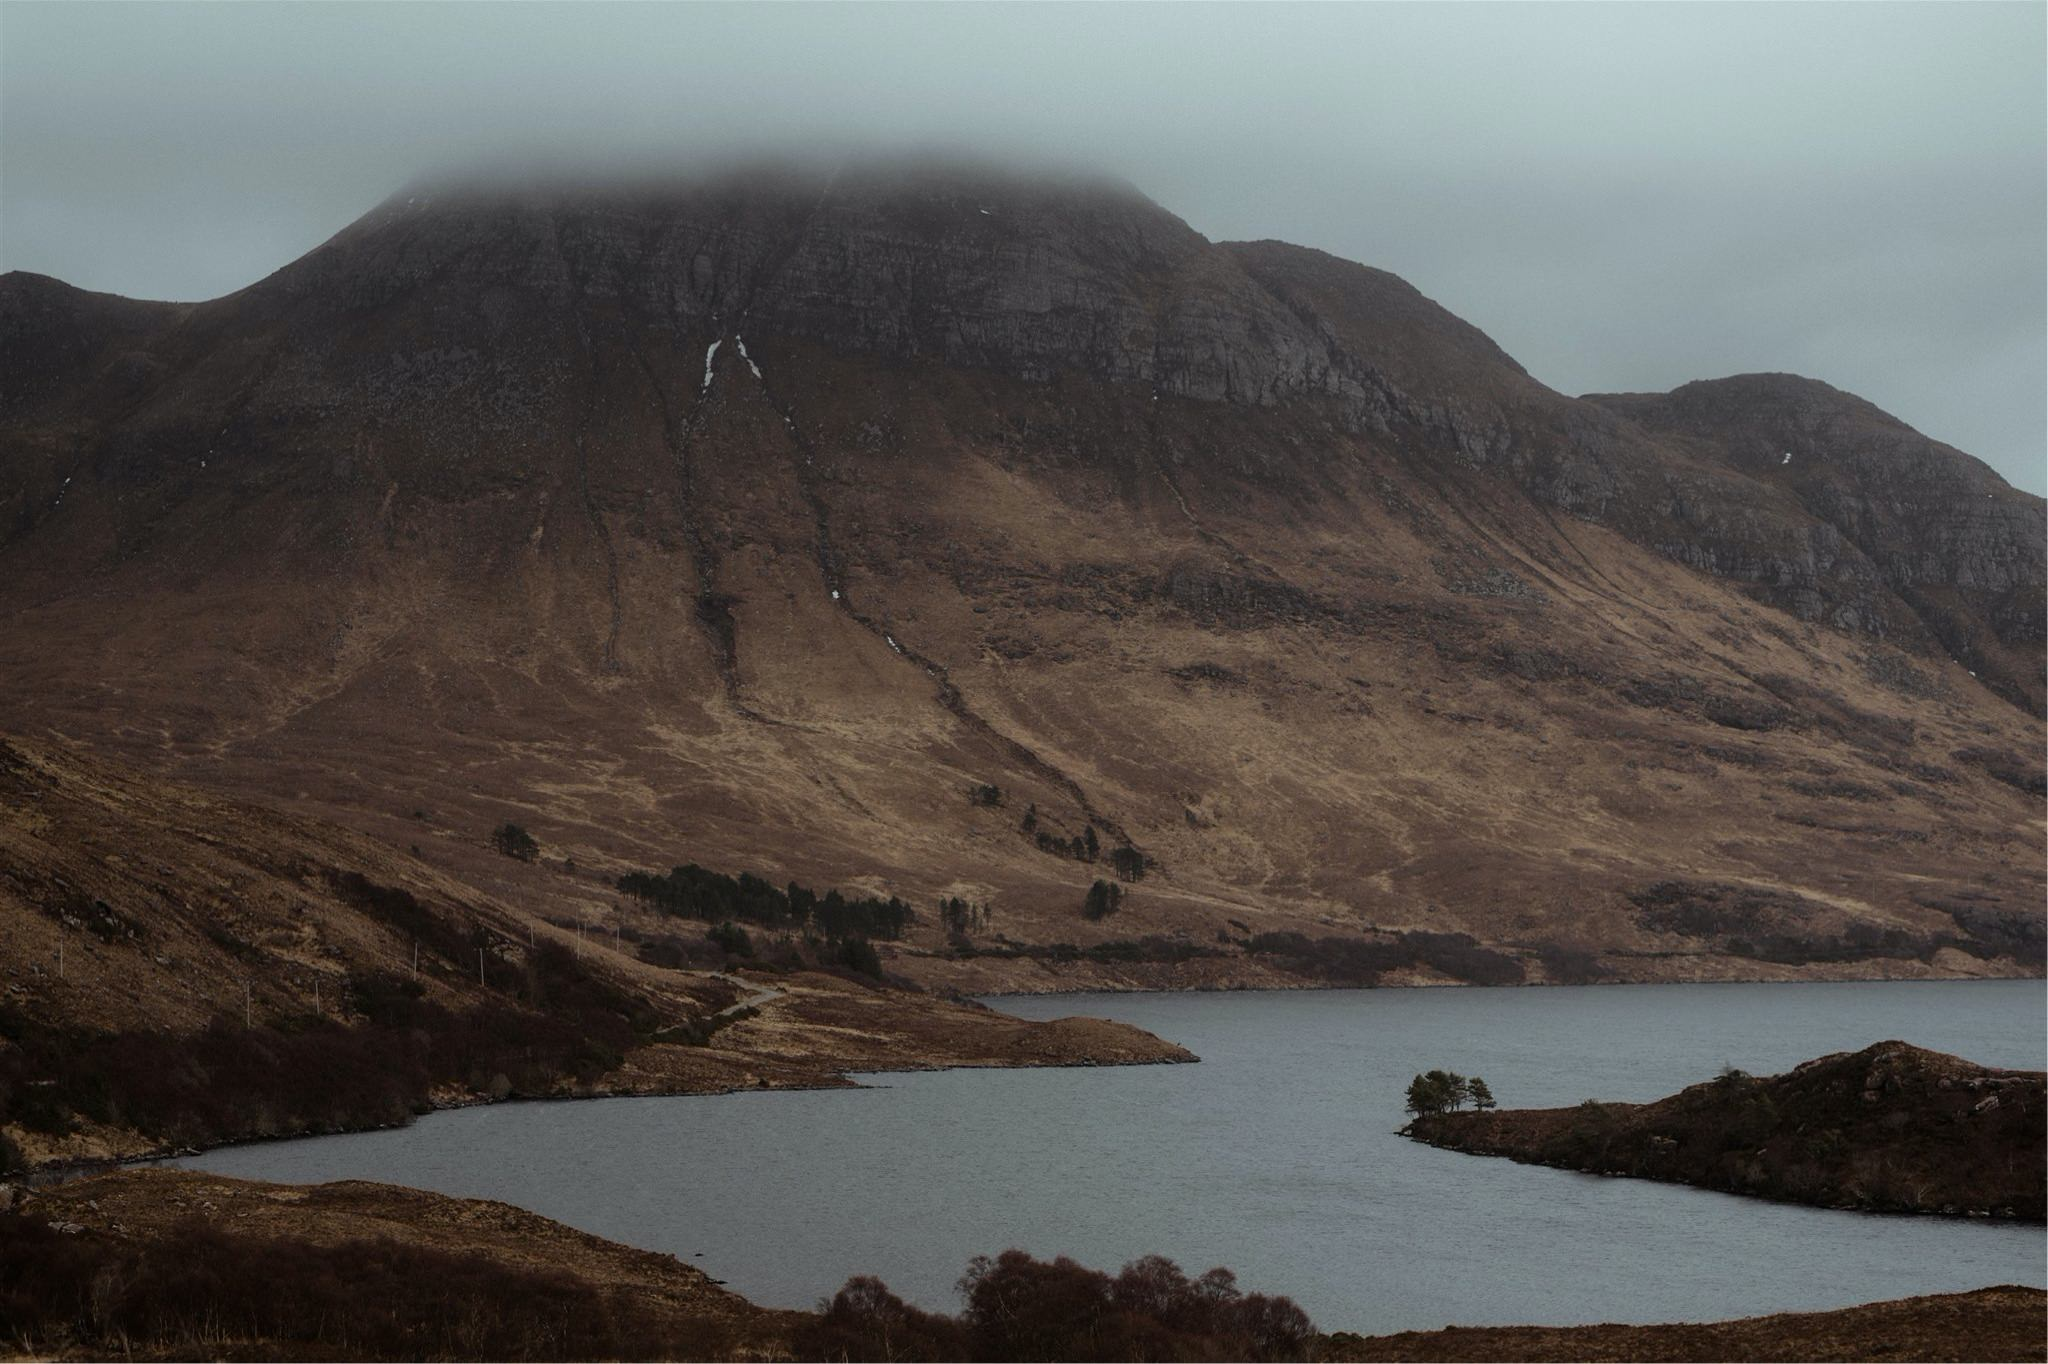 Landscape shot with a loch an mountain in Assynt, Scotland